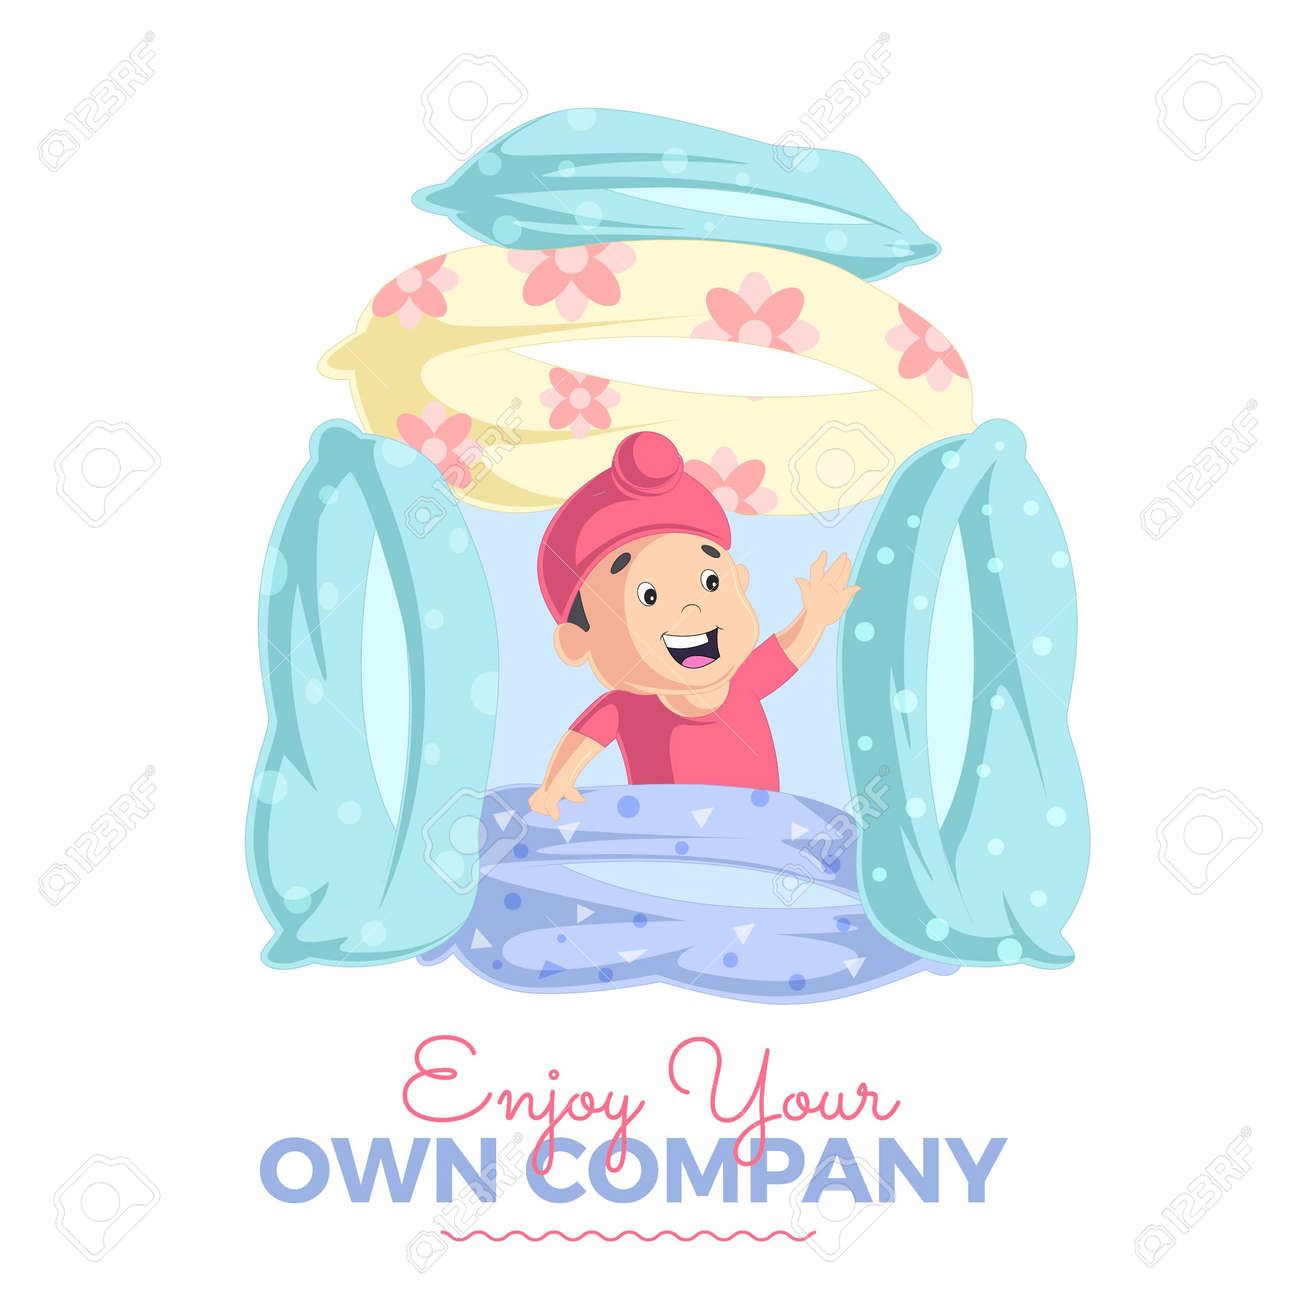 Enjoy your own company banner design template. Vector graphic illustration. - 171727319